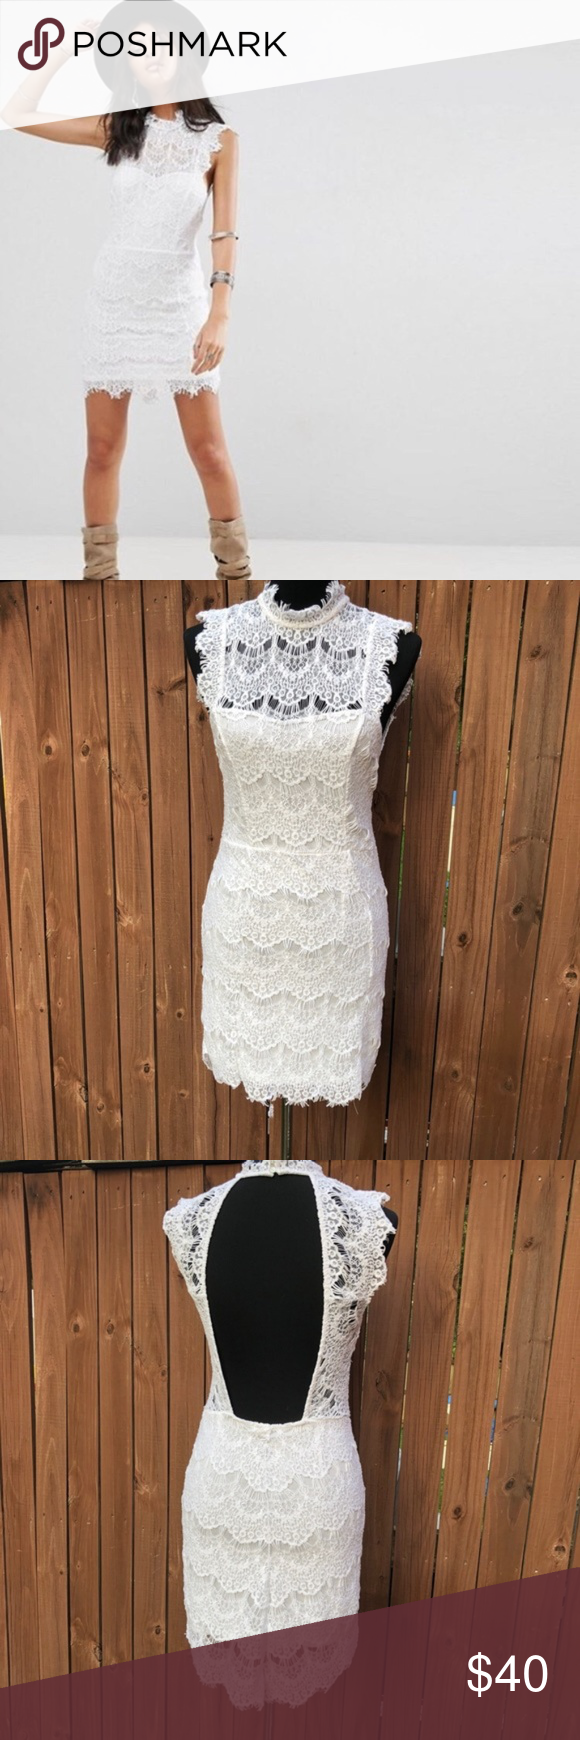 Free People Intimately Daydream Lace Slip Dress Intimately Free People Daydream Slip Bodycon Dress In White Has Some Lace Slip Dress Clothes Design Slip Dress [ 1740 x 580 Pixel ]